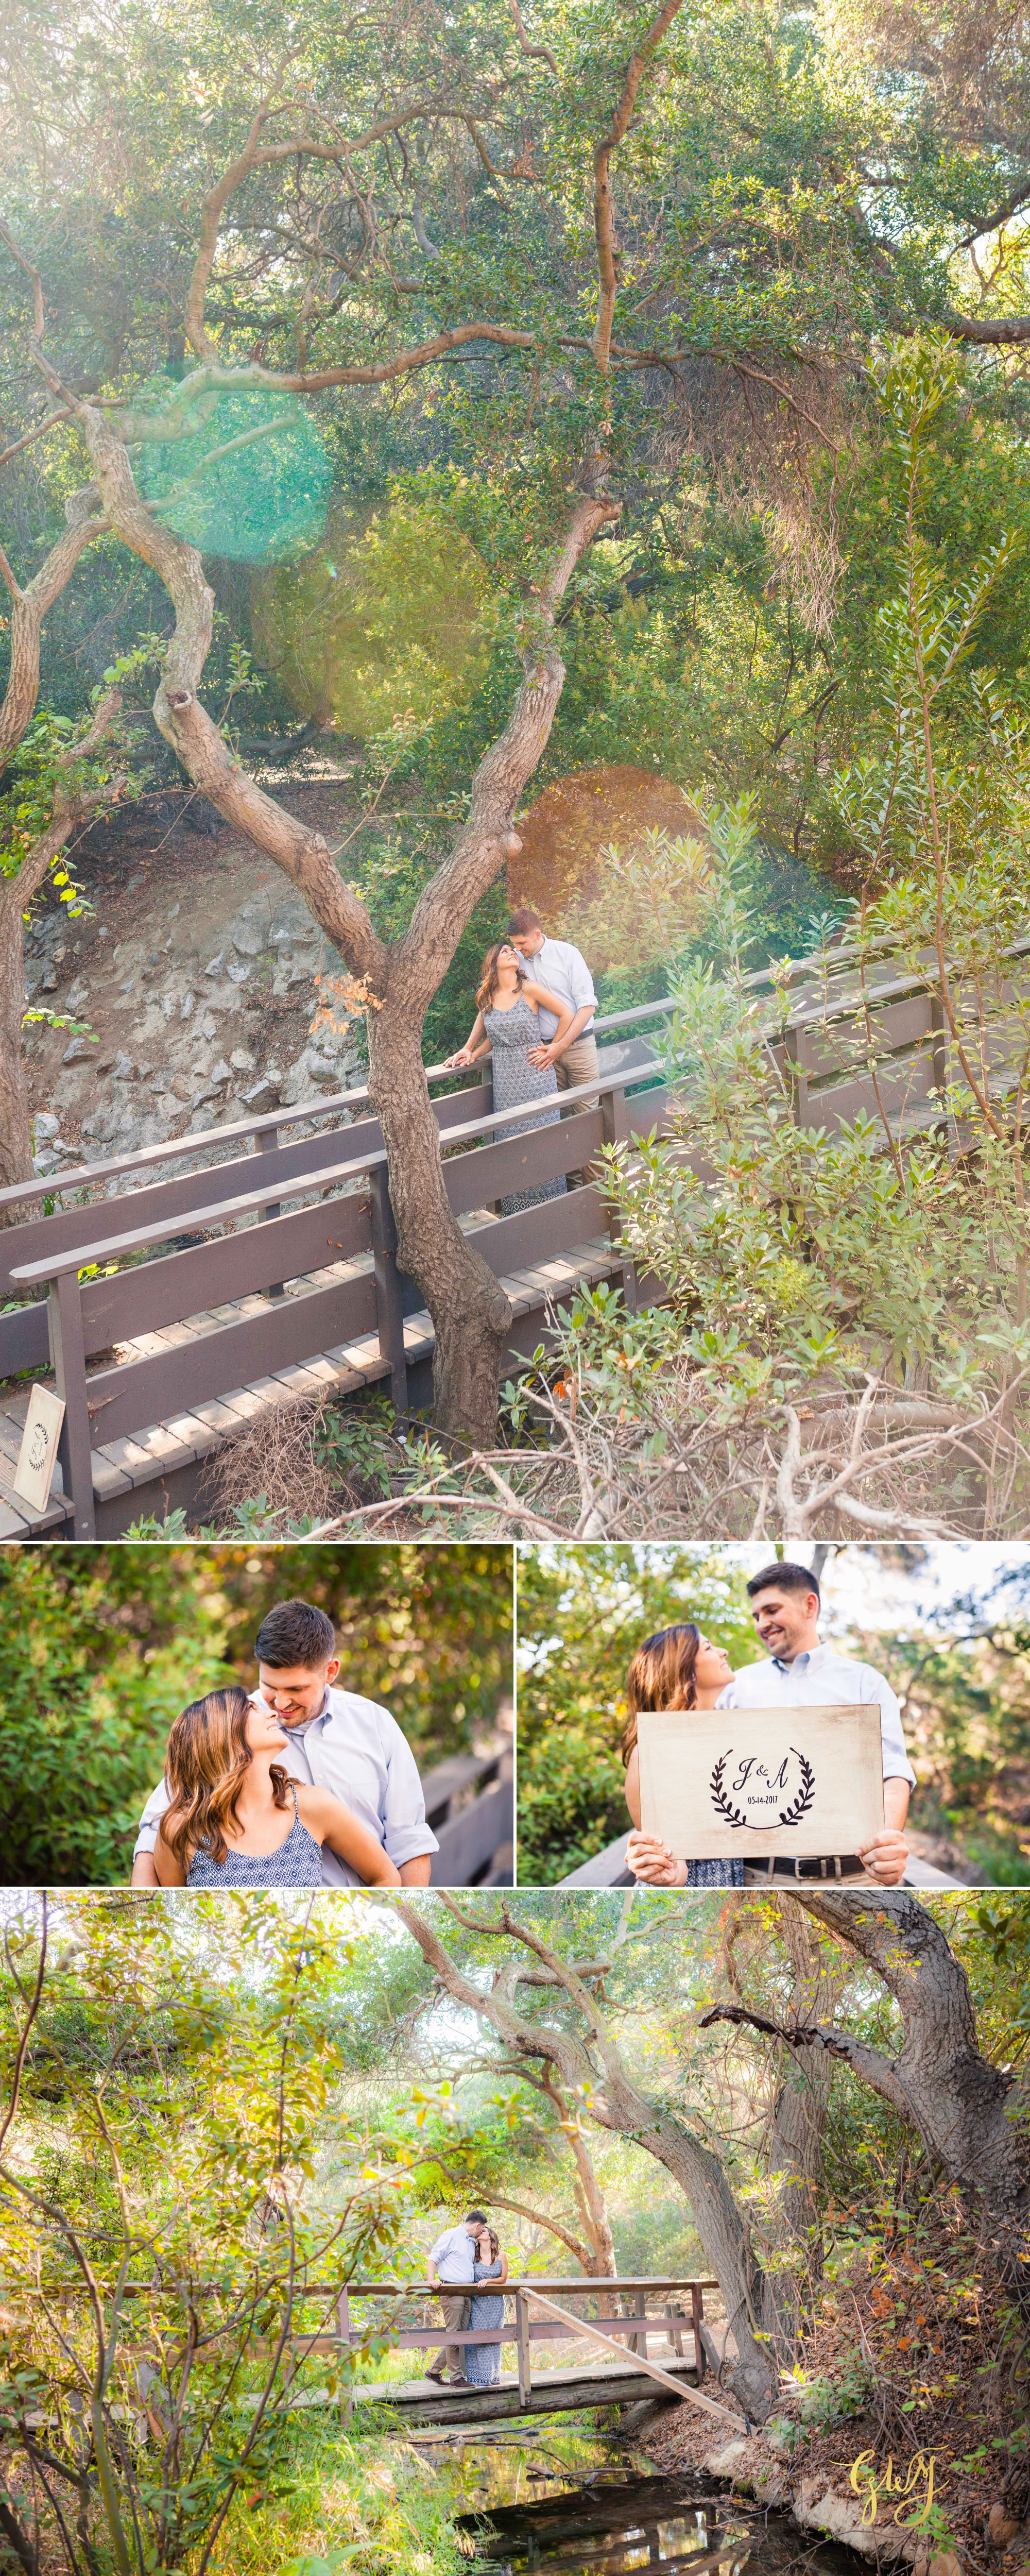 Allison + Jared Oak Canyon Nature Center Corona Del Mar Beach Sunset by Glass Woods Media 5.jpg